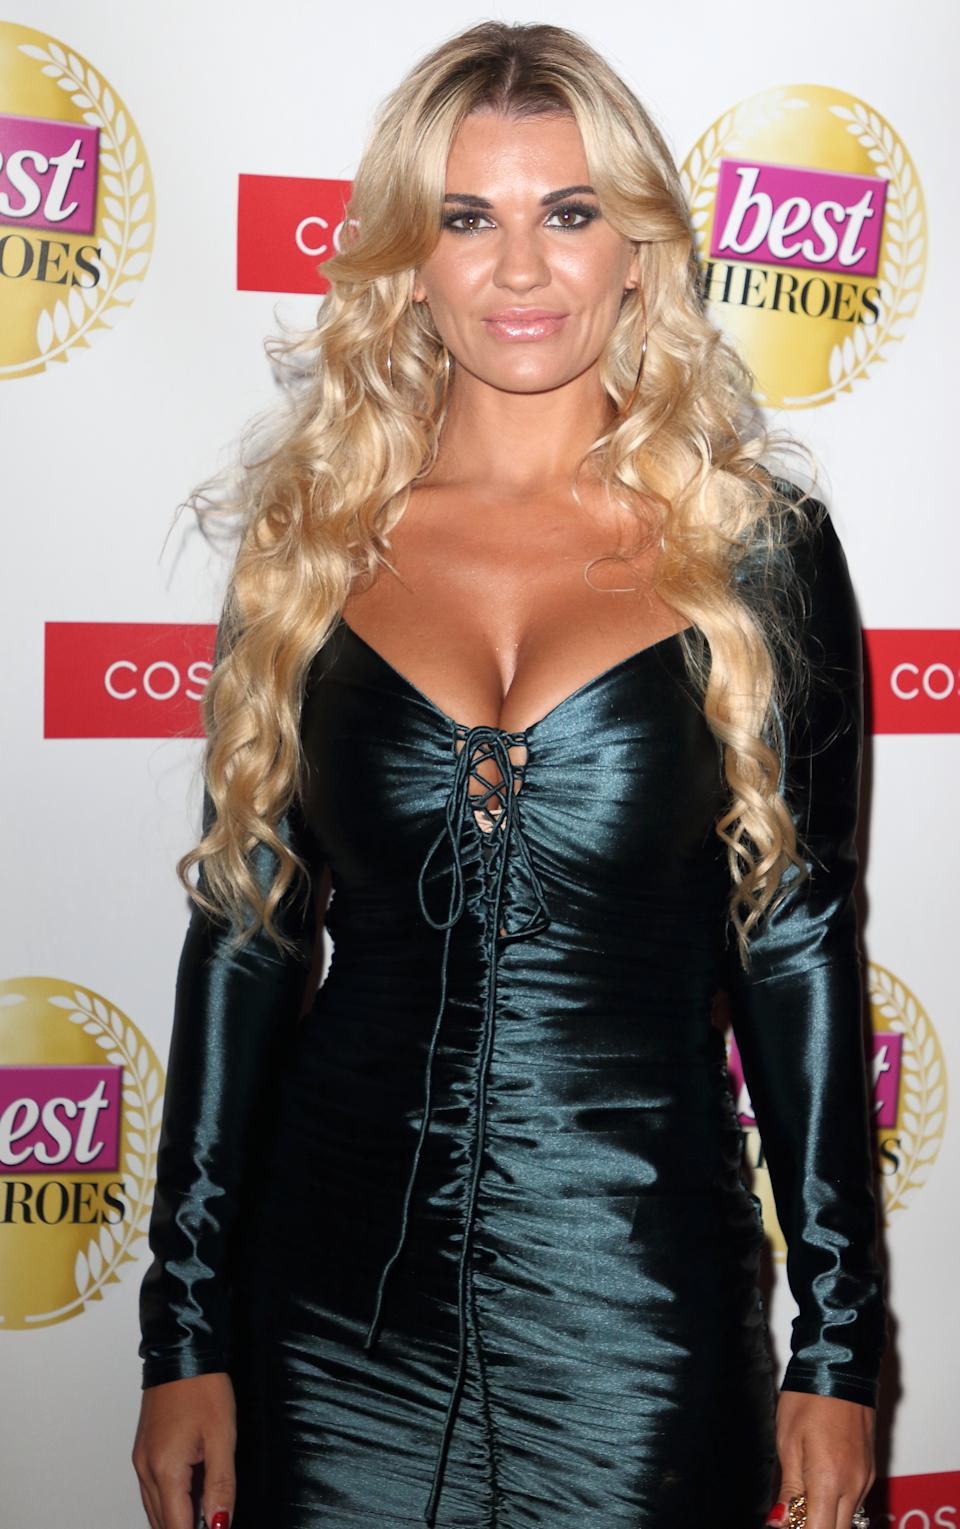 Christine McGuinness attends The Best Heroes Awards 2019 at The Bloomsbury Hotel. (Photo by Keith Mayhew / SOPA Images/Sipa USA)